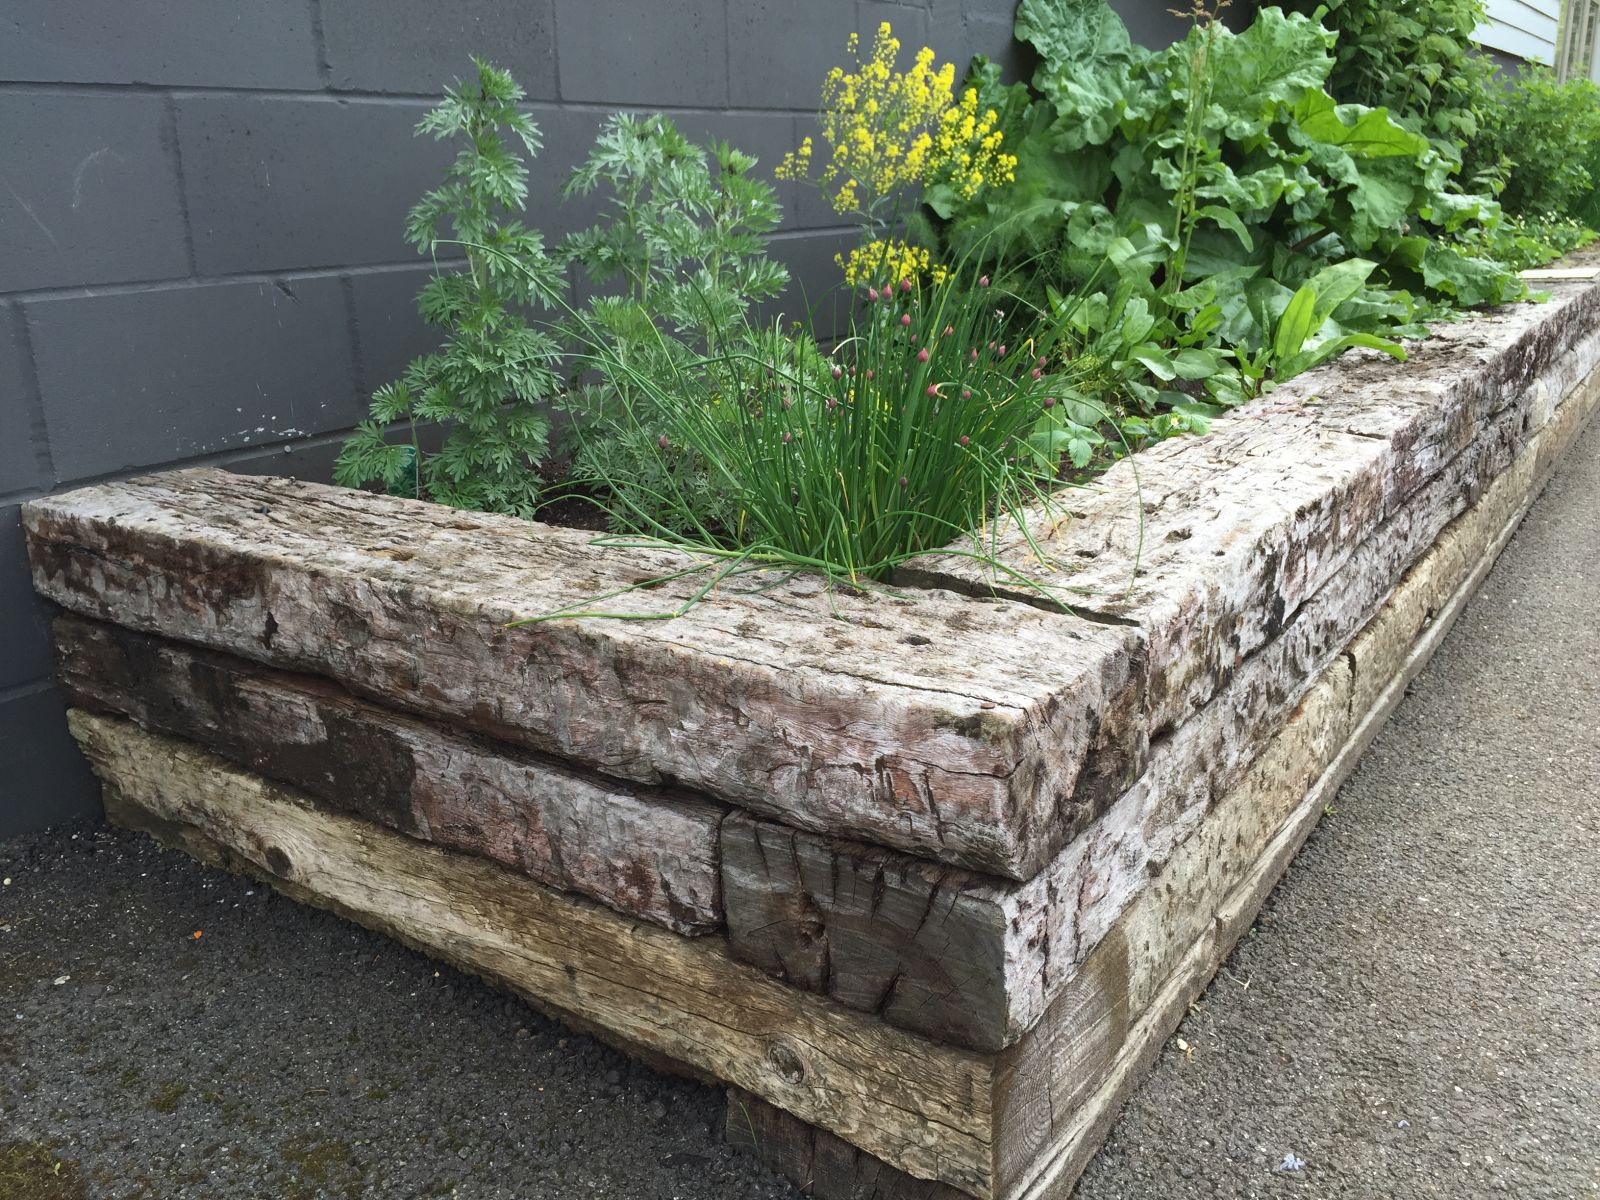 Using Railway Sleepers For Raised Vegetable Beds How To Build With Railway Sleepers